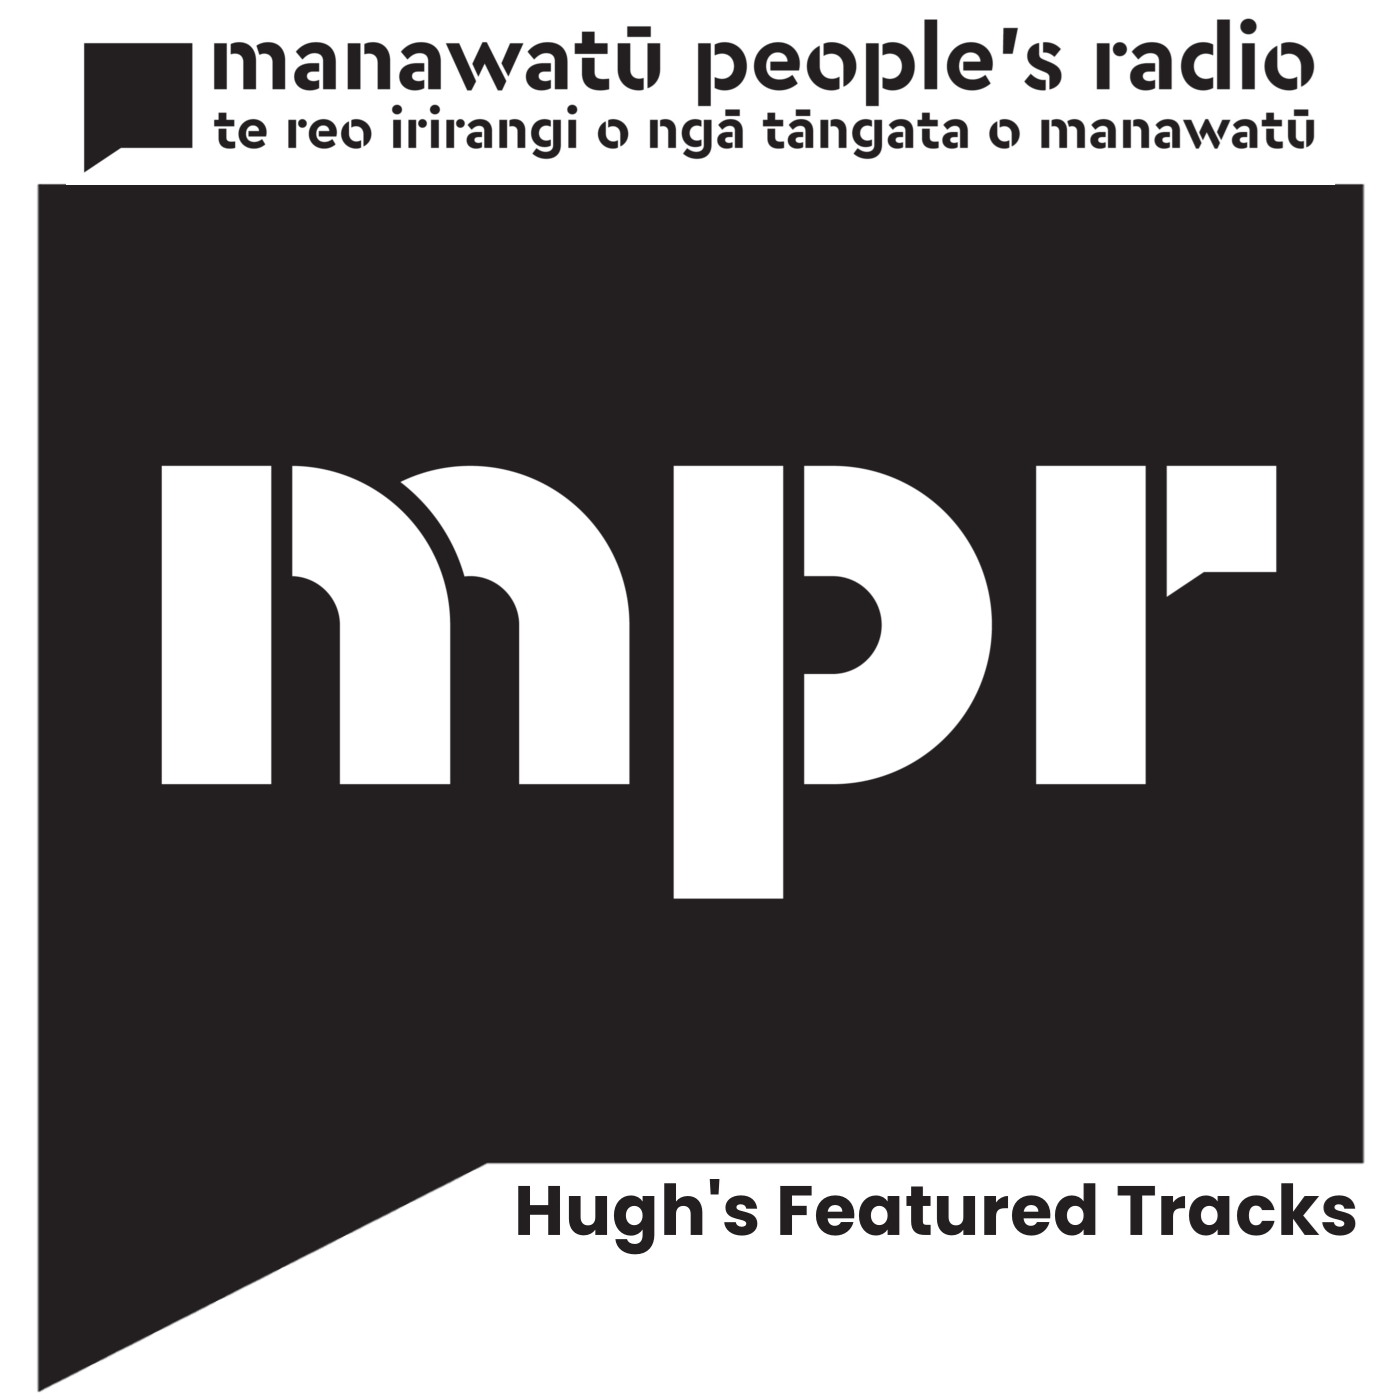 Hugh's Featured Tracks-15-02-2019